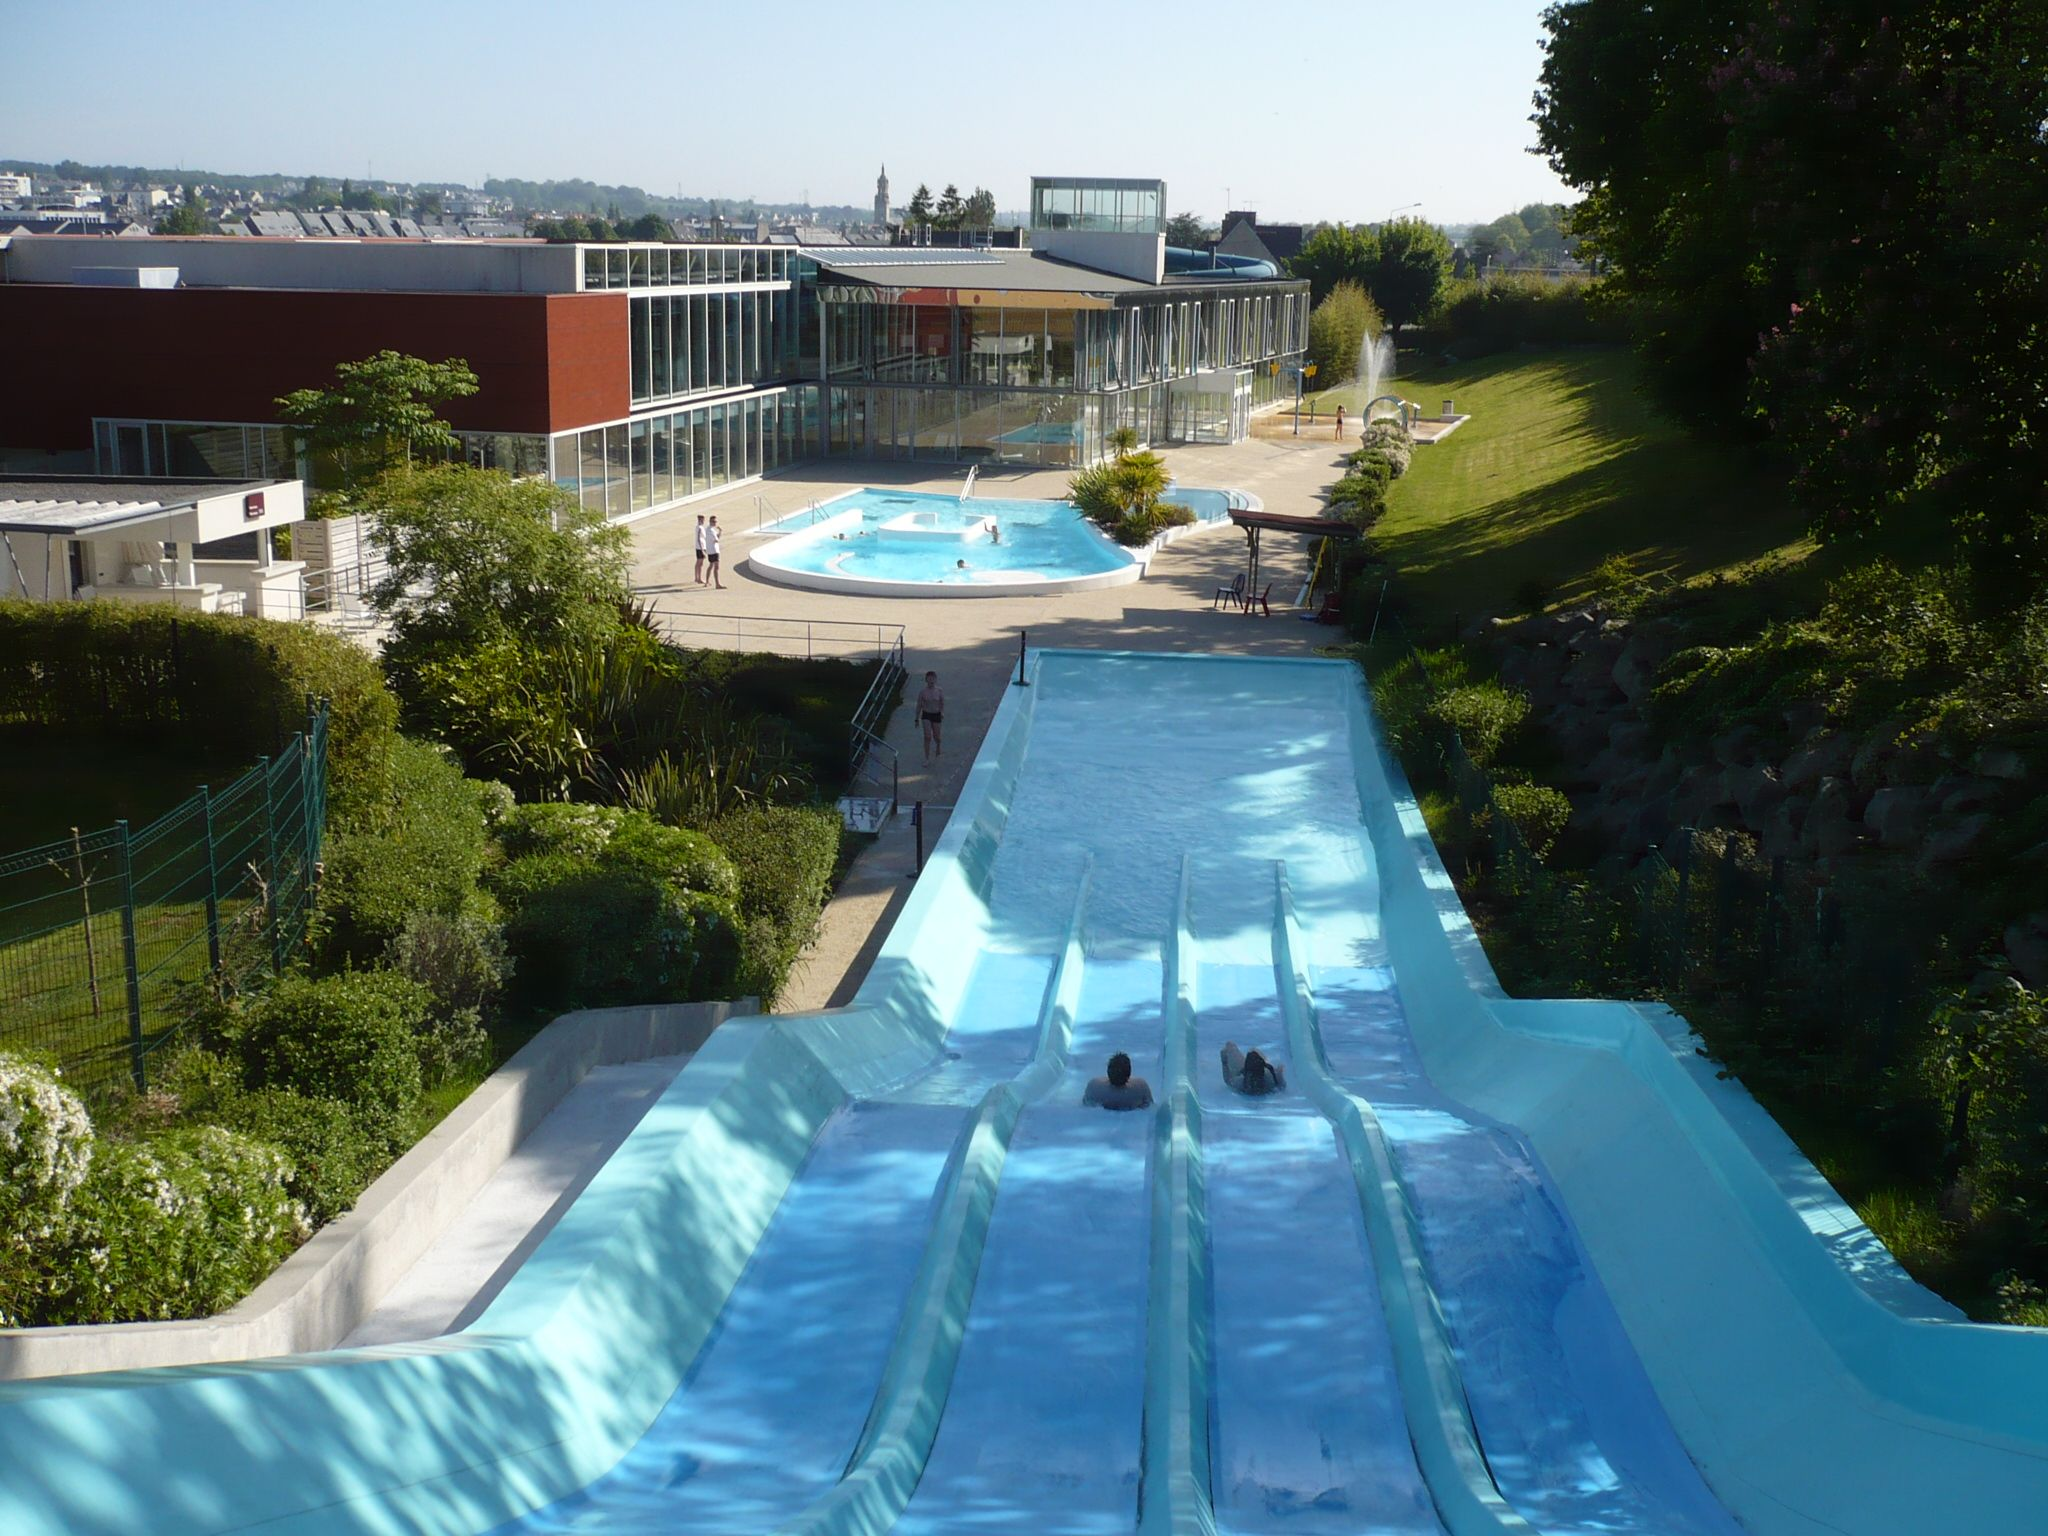 centre aquatique aqualorn ForAqualorn Piscine Landerneau